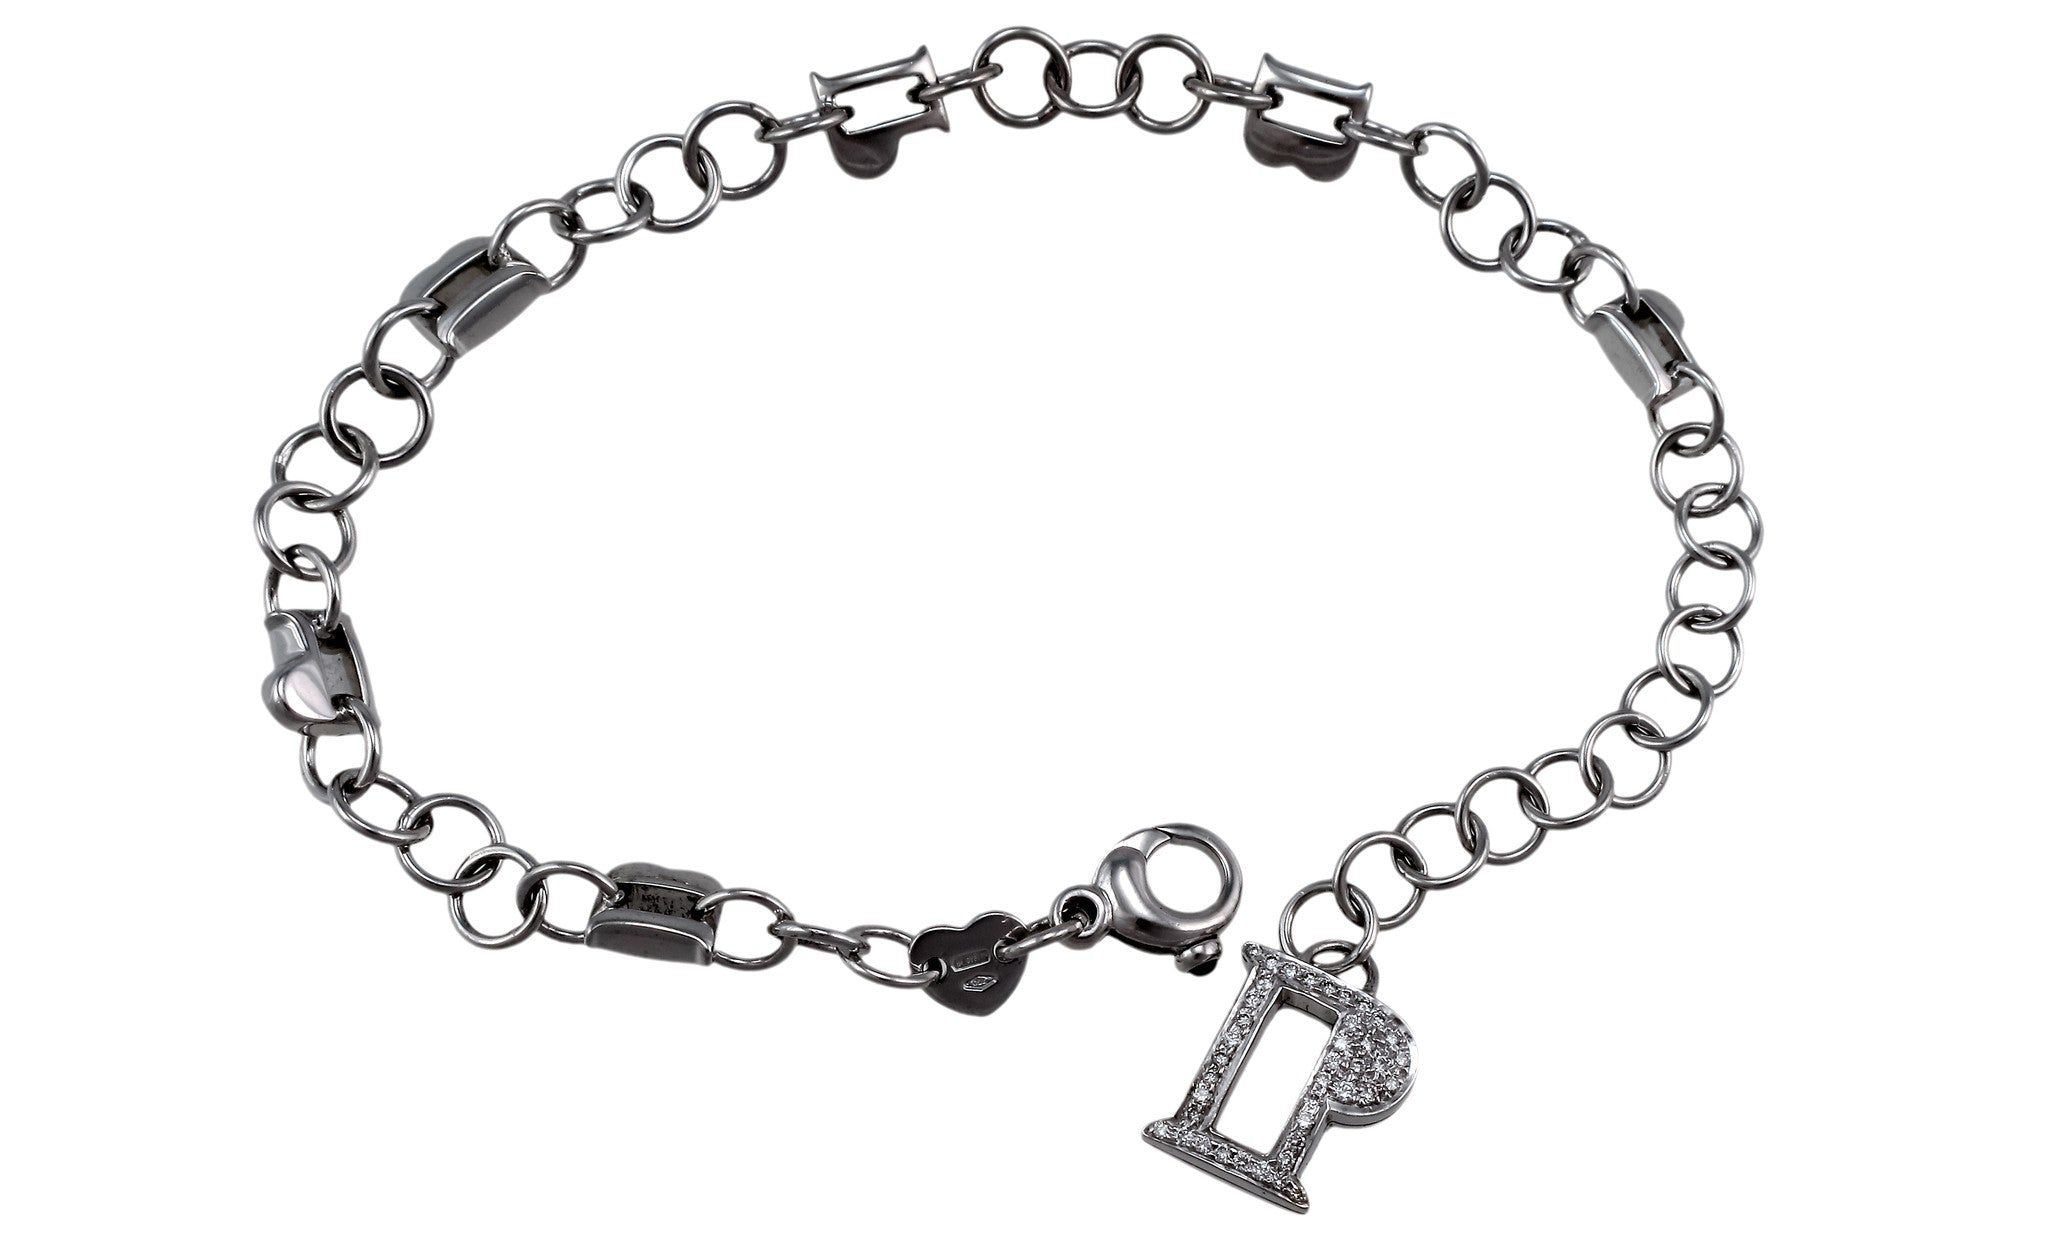 Charm 18K White Gold Bracelet (Gold: 17.55 g; Diamonds: 0.31 ct. twd. / Sapphires: 0.06 ct. tw.)